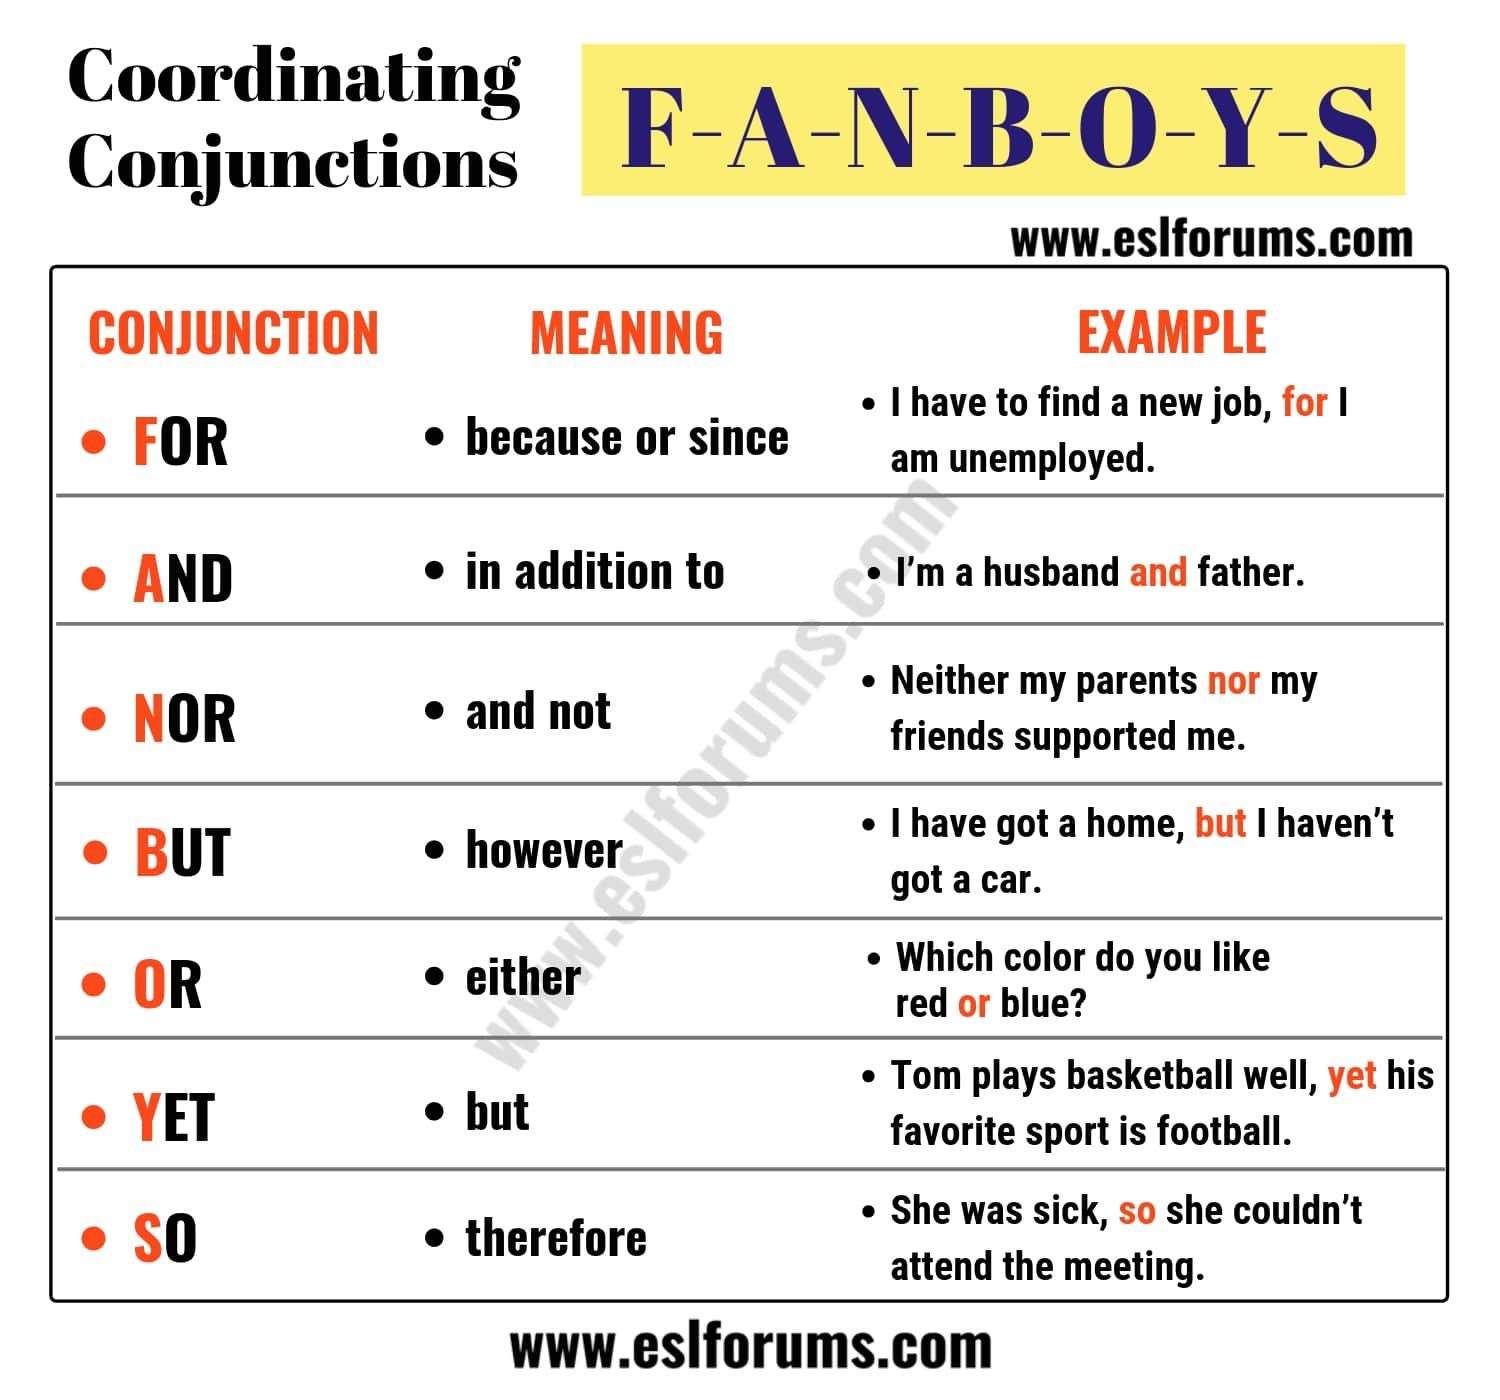 Fanboys 7 Important Coordinating Conjunctions